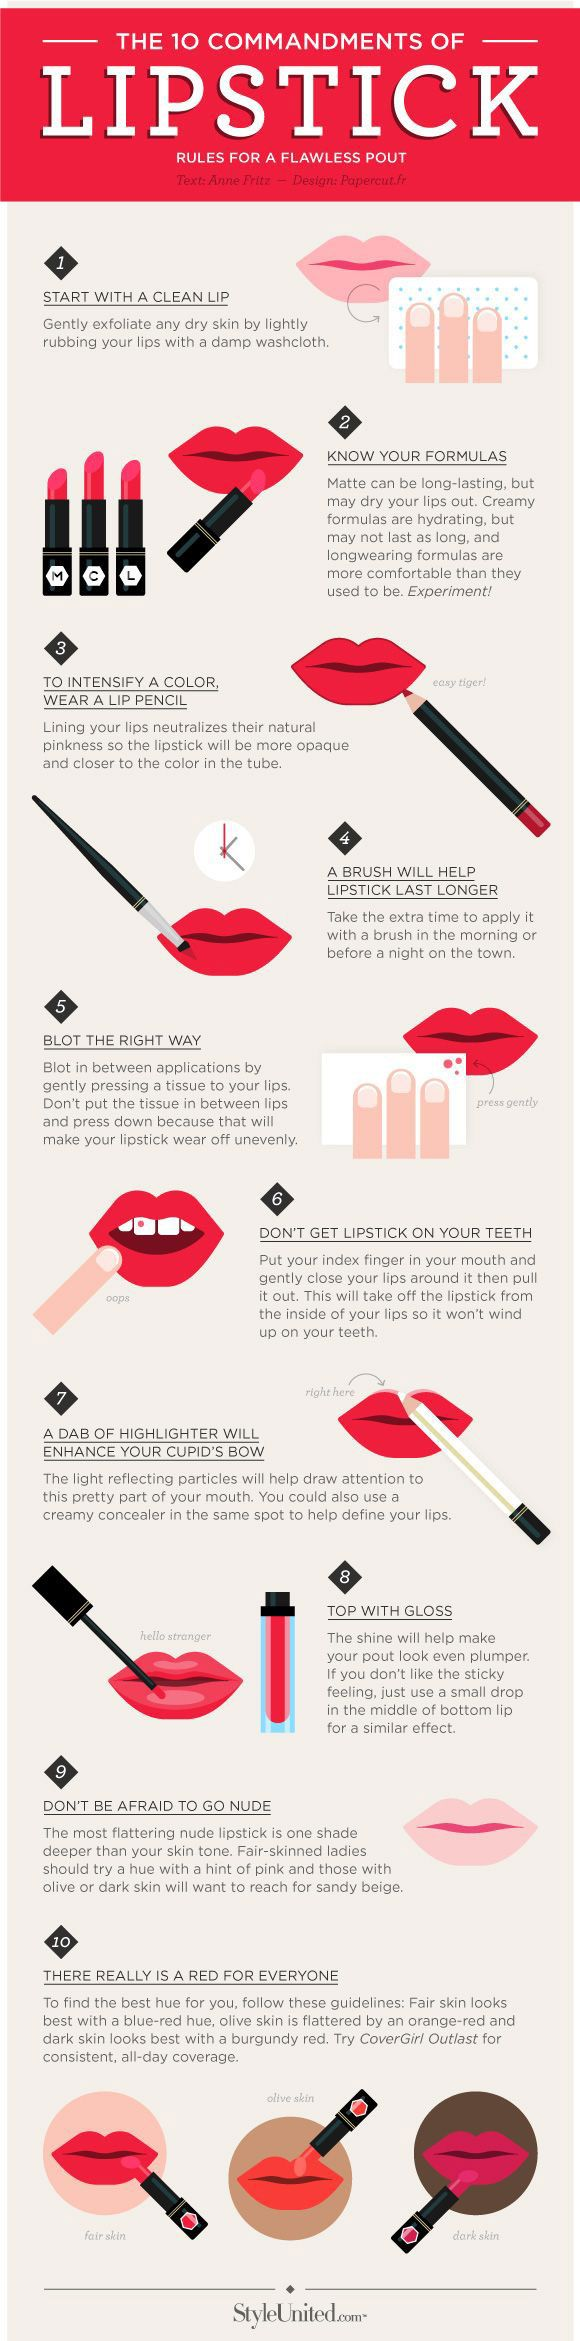 18 Amazing Lipstick Hacks, Tips and Tricks You Need To Know